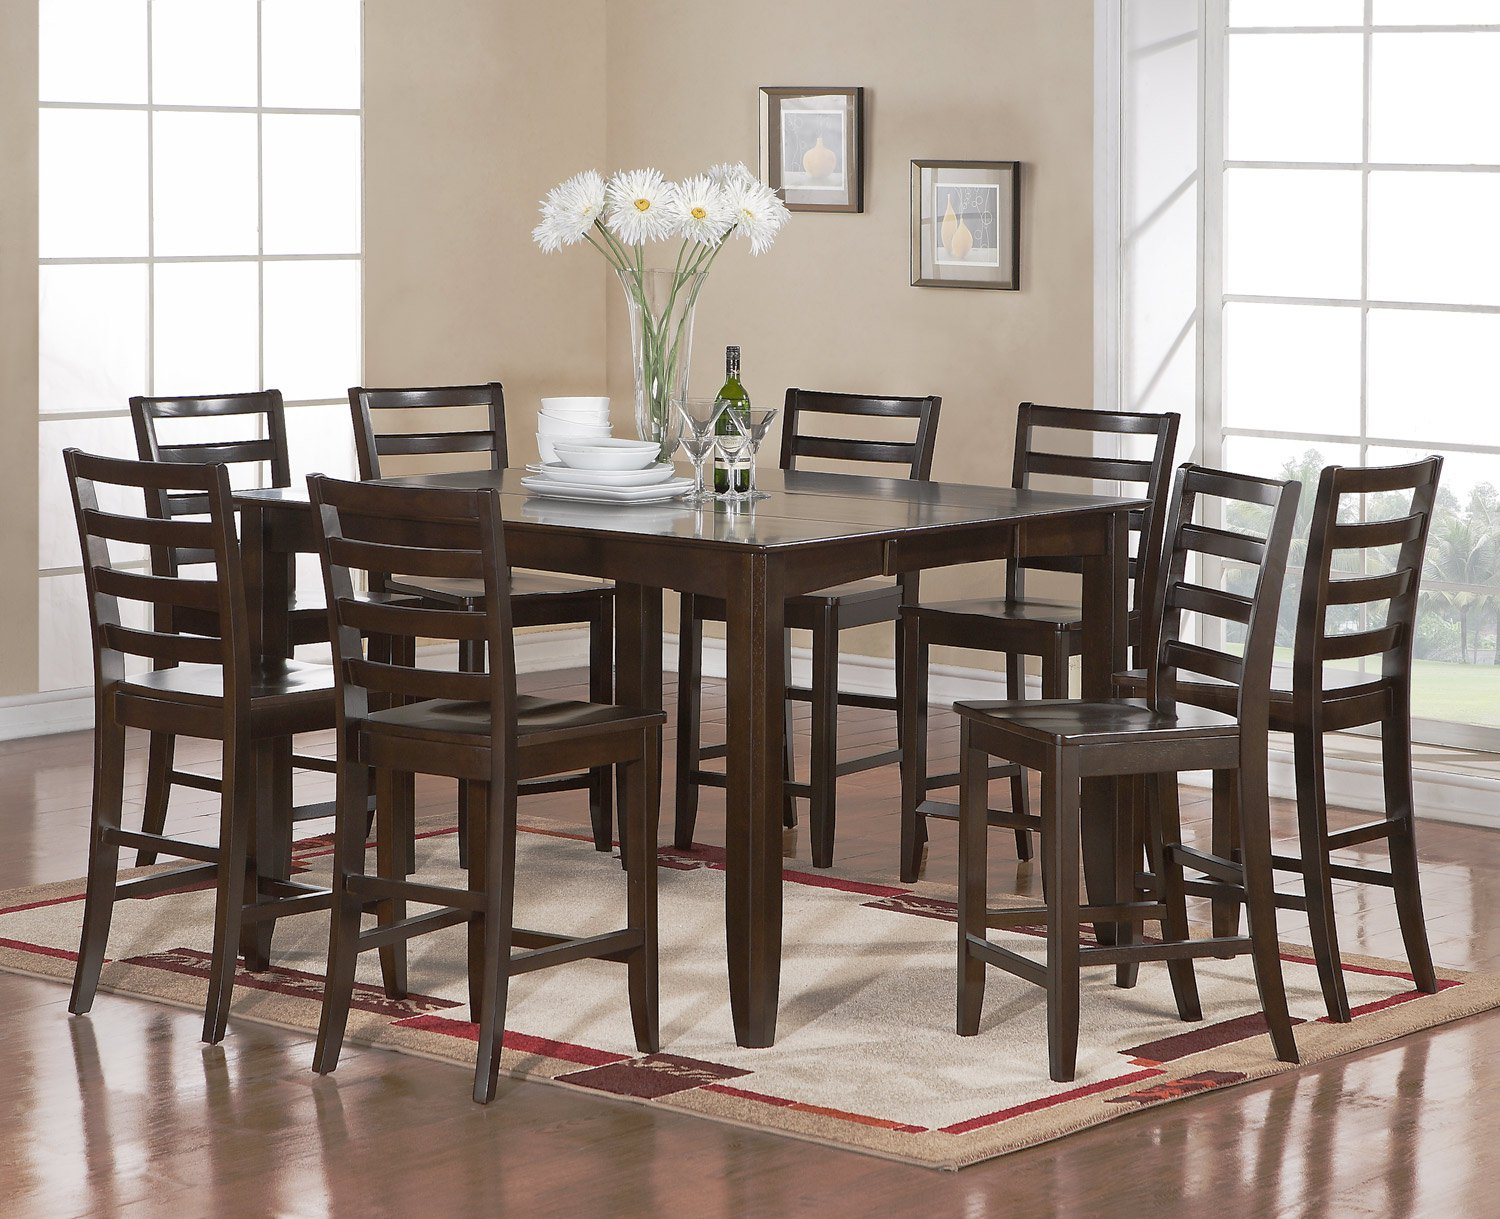 fairwinds square counter height dining table in cappuccino